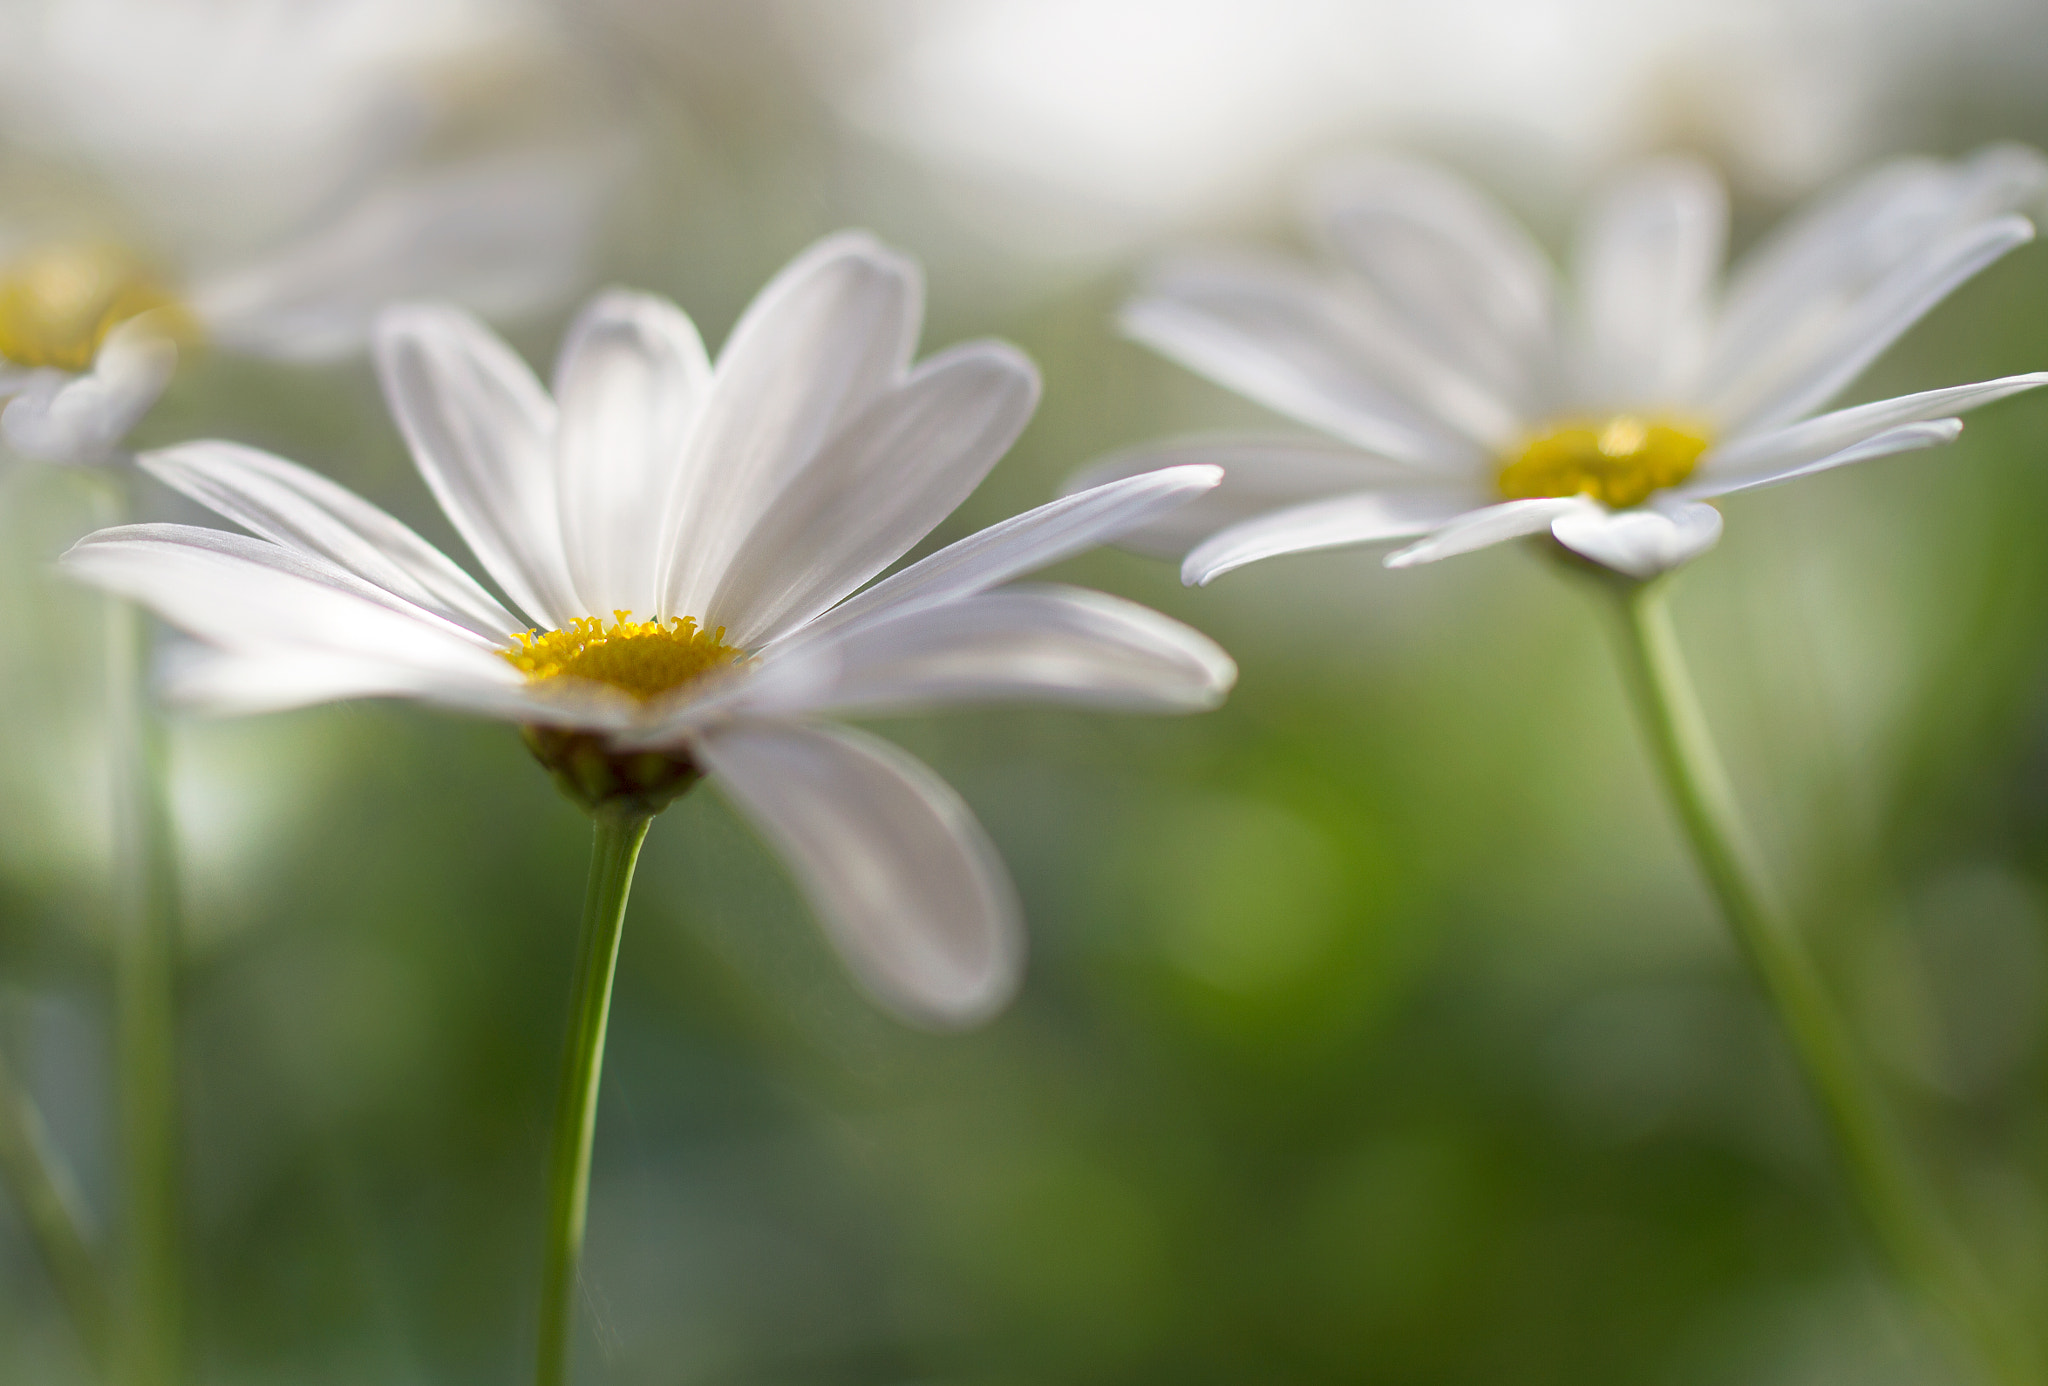 Photograph Summer sweet by Mandy Disher on 500px